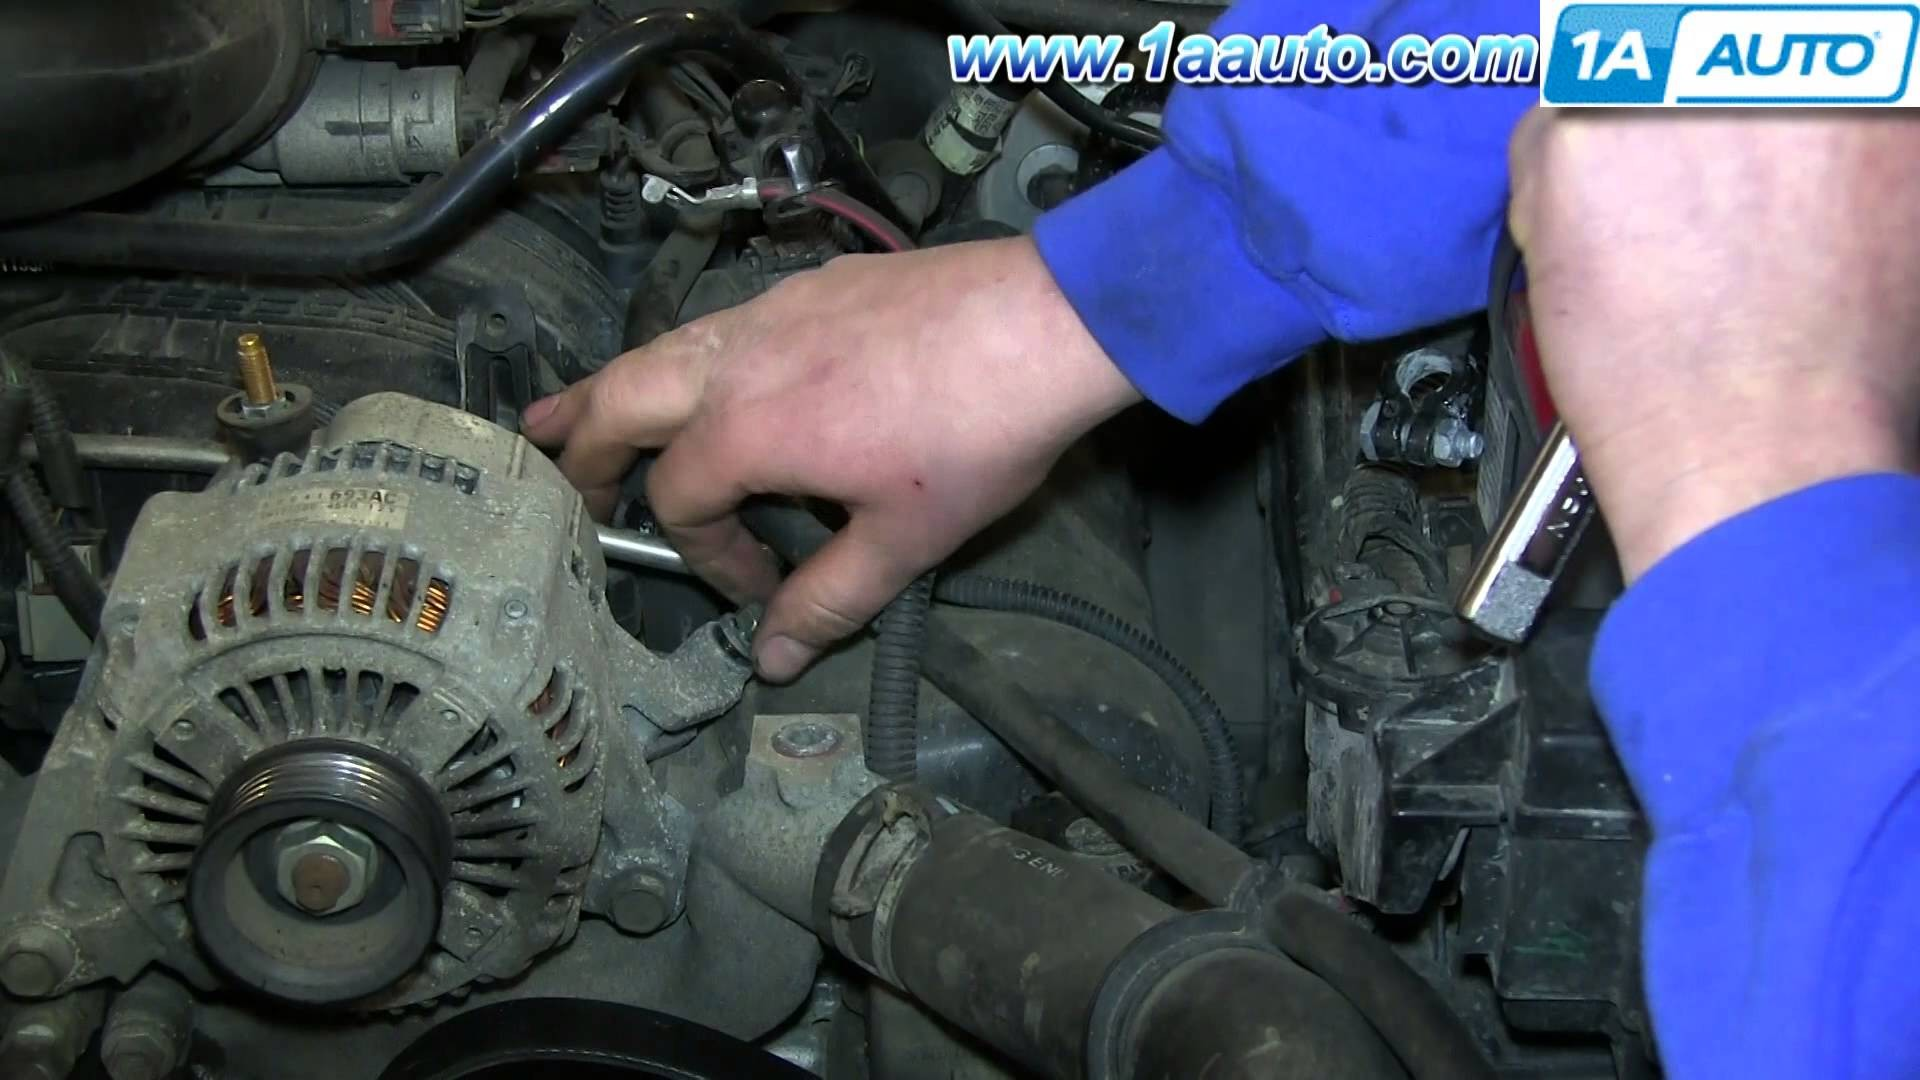 2007 Jeep Commander Engine Diagram How to Install Replace Remove Alternator 2004 07 Jeep Liberty Of 2007 Jeep Commander Engine Diagram